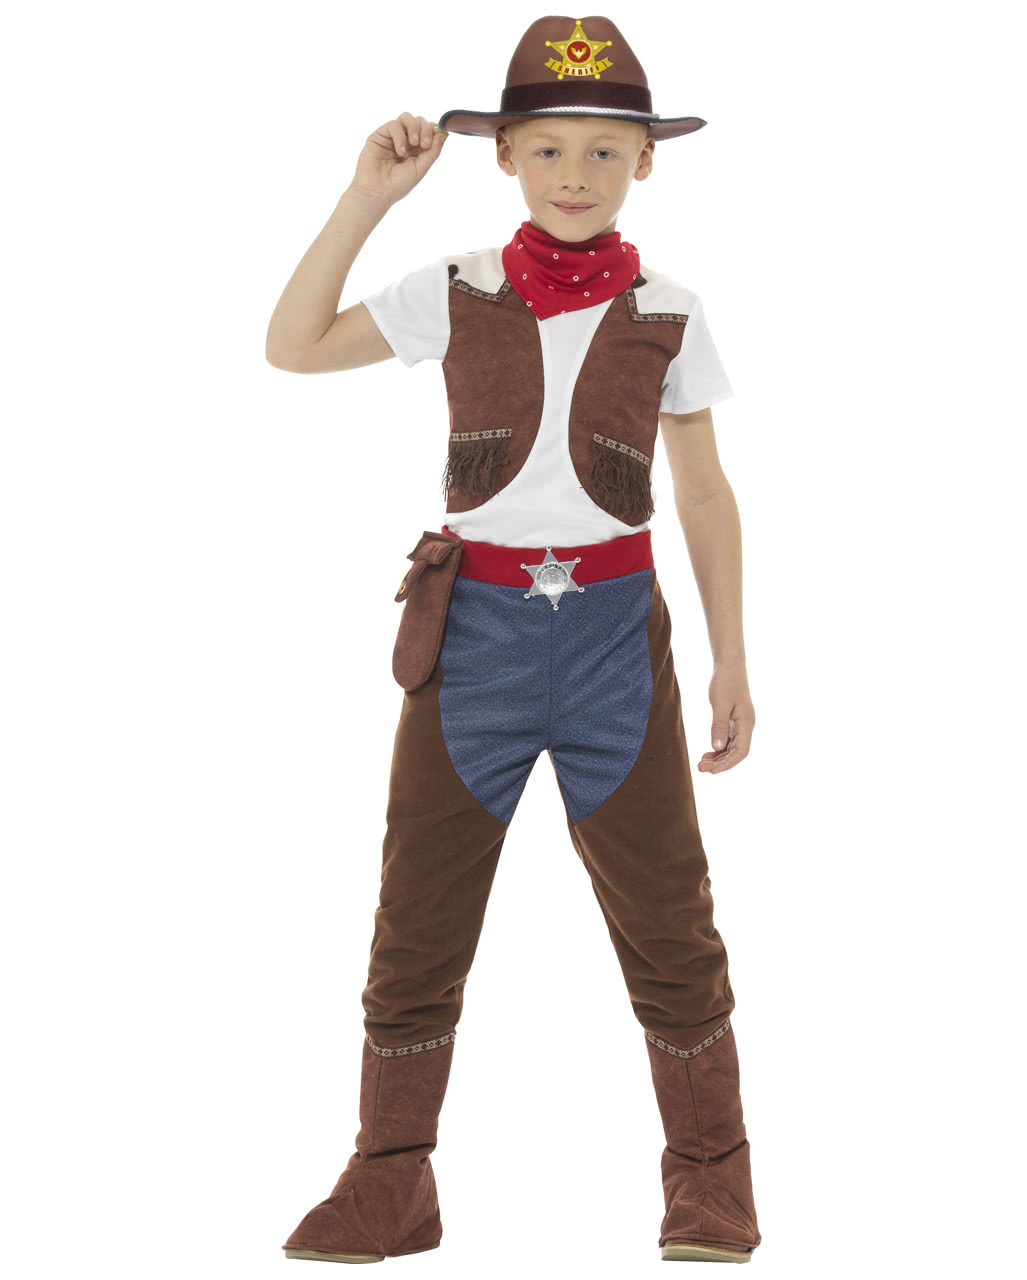 80dca922b Sheriff children 's costume